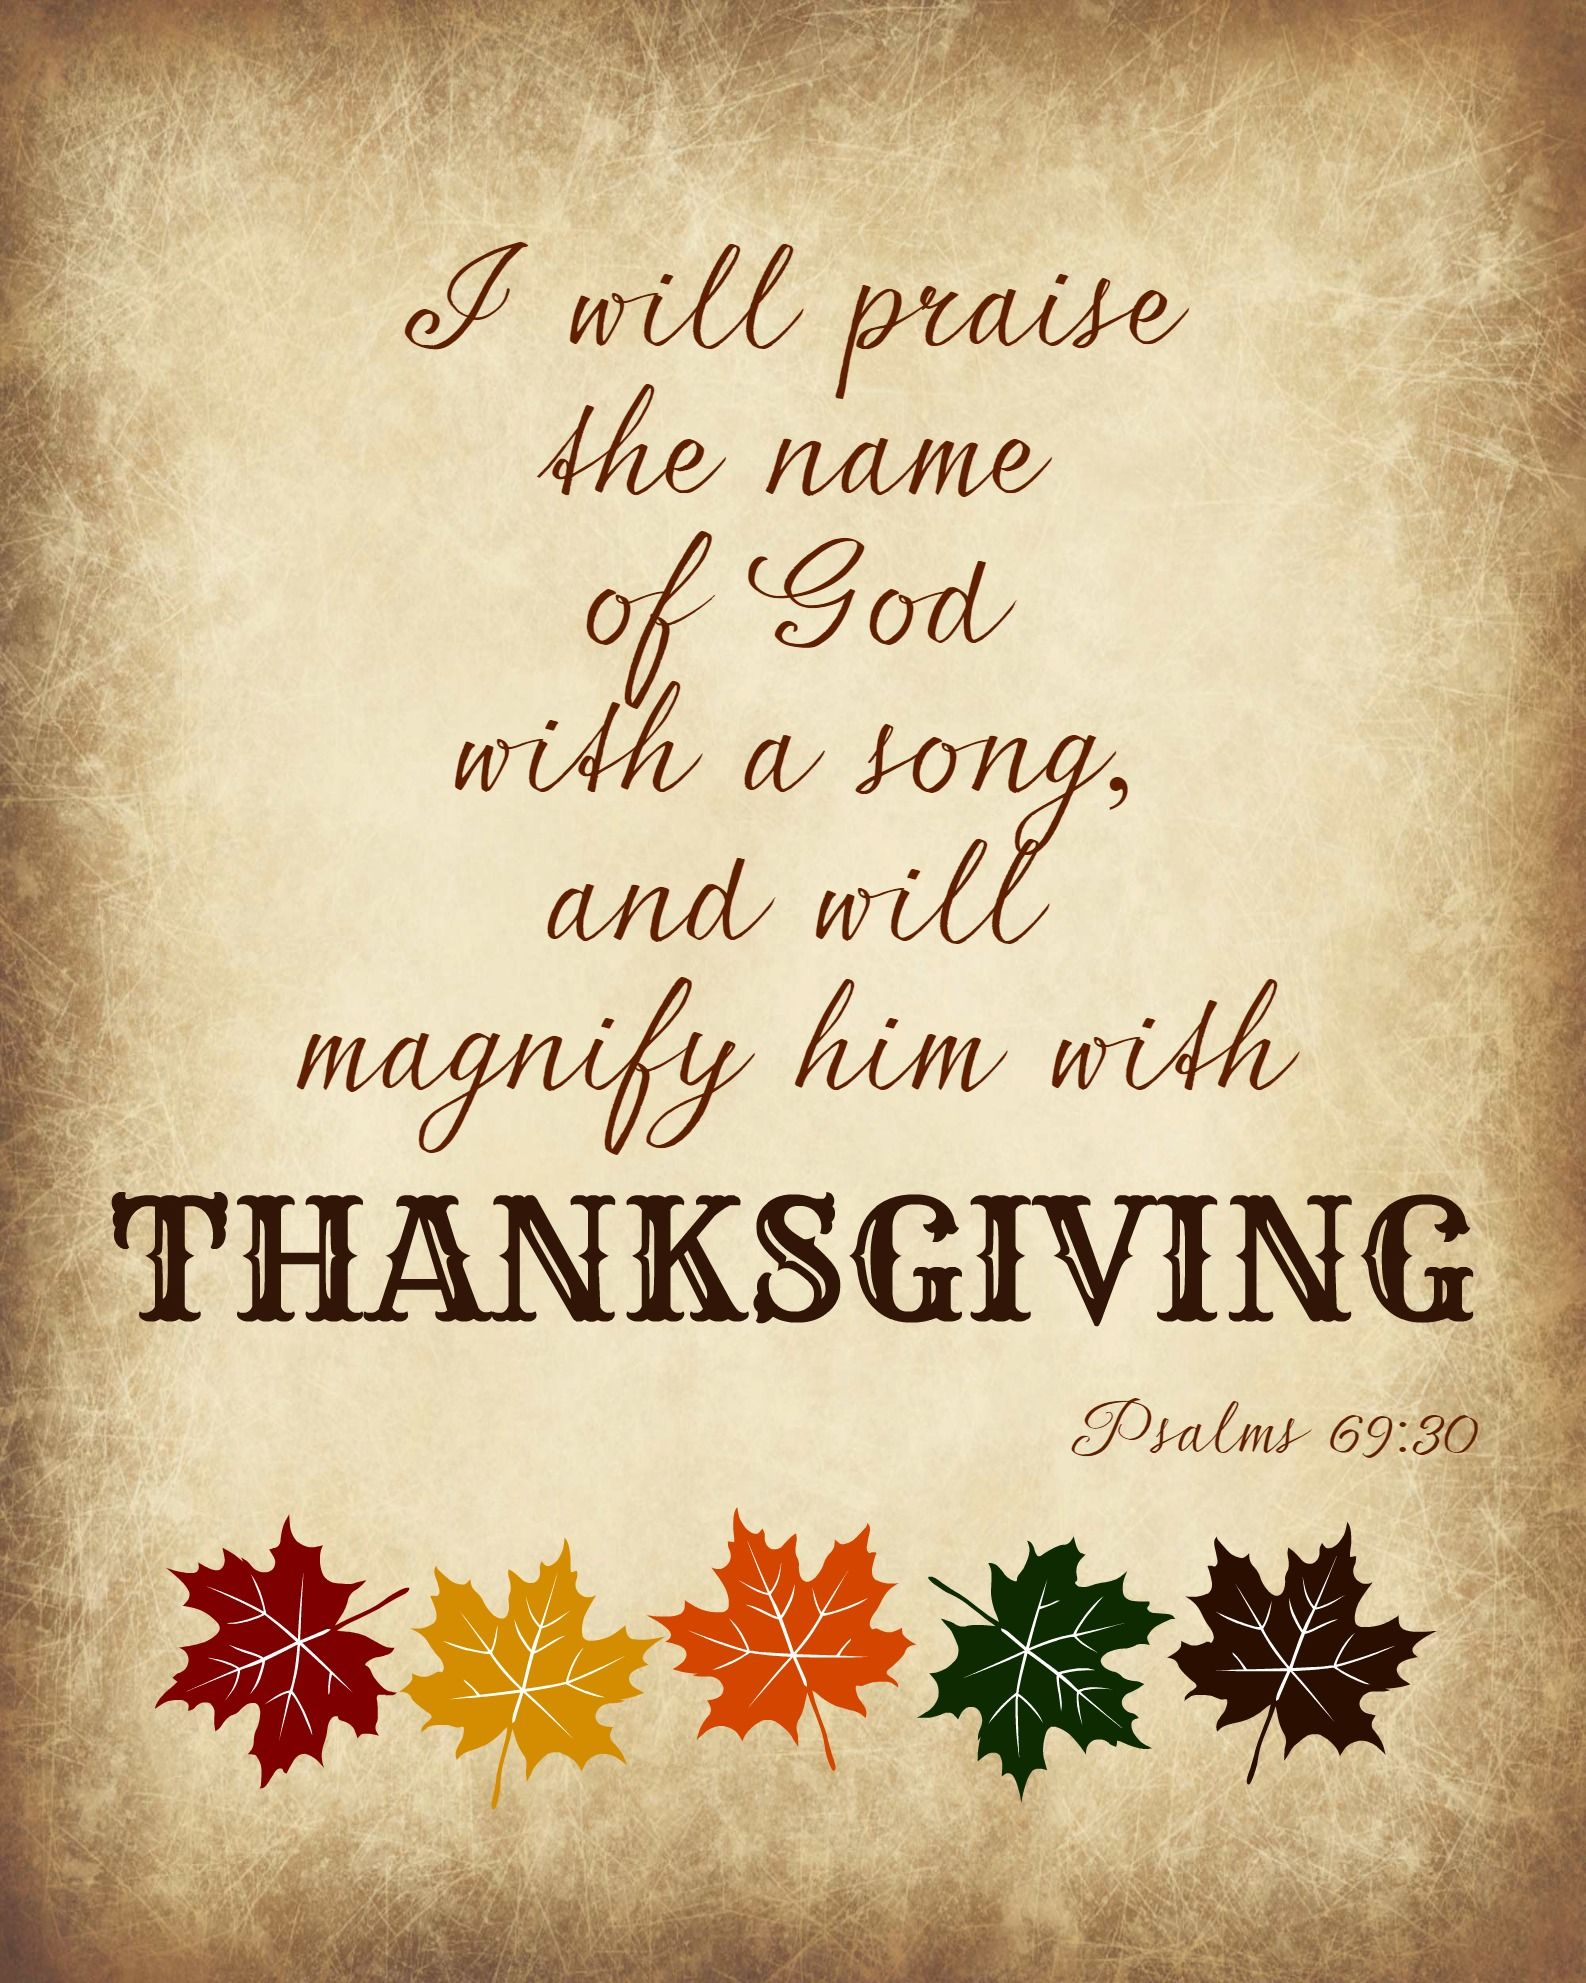 Free printable scripture for the ponderize scripture challenge free printable thanksgiving scripture perfect for the ponderize challenge kristyandbryce Choice Image